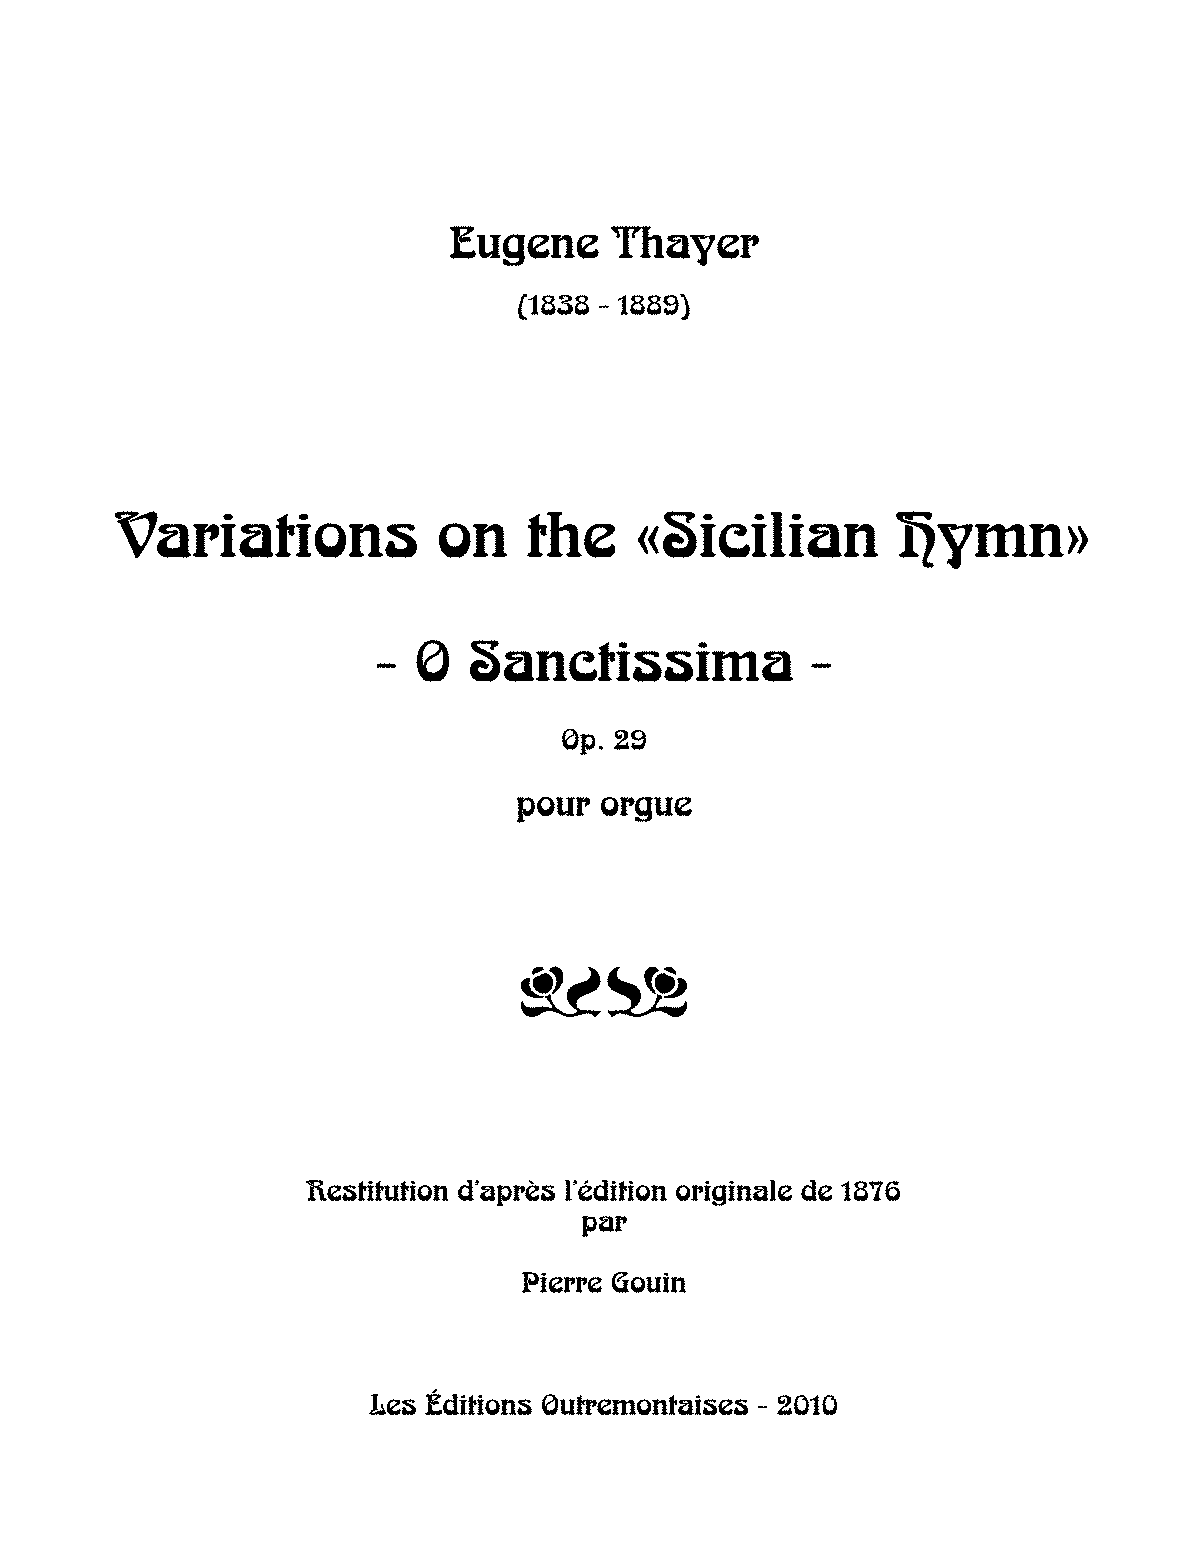 WIMA.b2a1-Thayer Variations Op.29.pdf